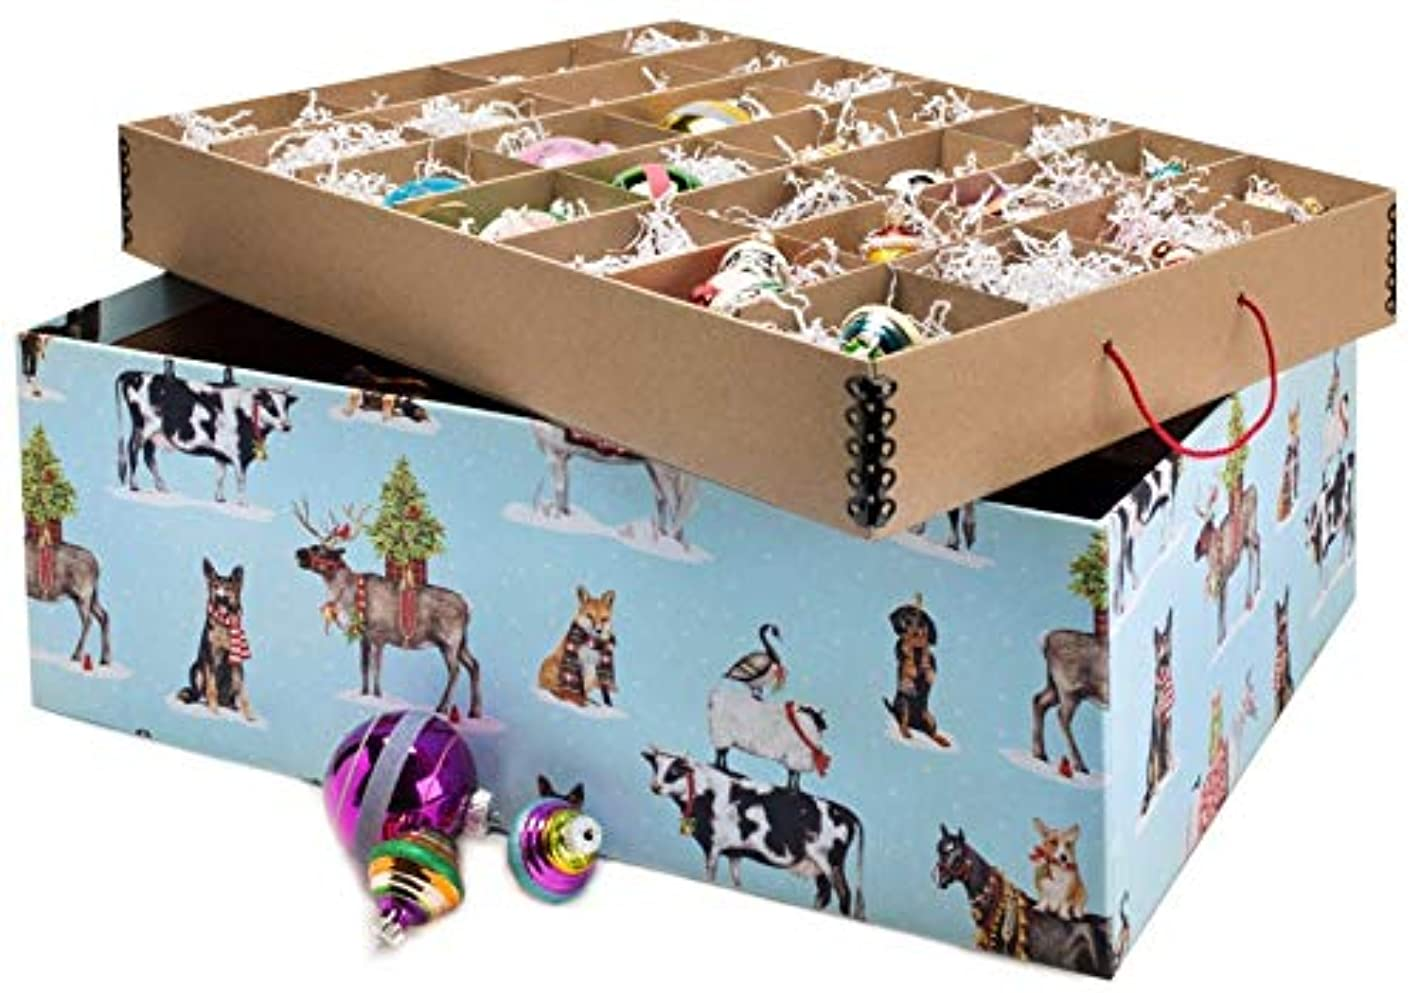 Ultimate Ornament Box - Holly Jolly Critters, Limited Edition, Acid-Free Ornament Storage Box